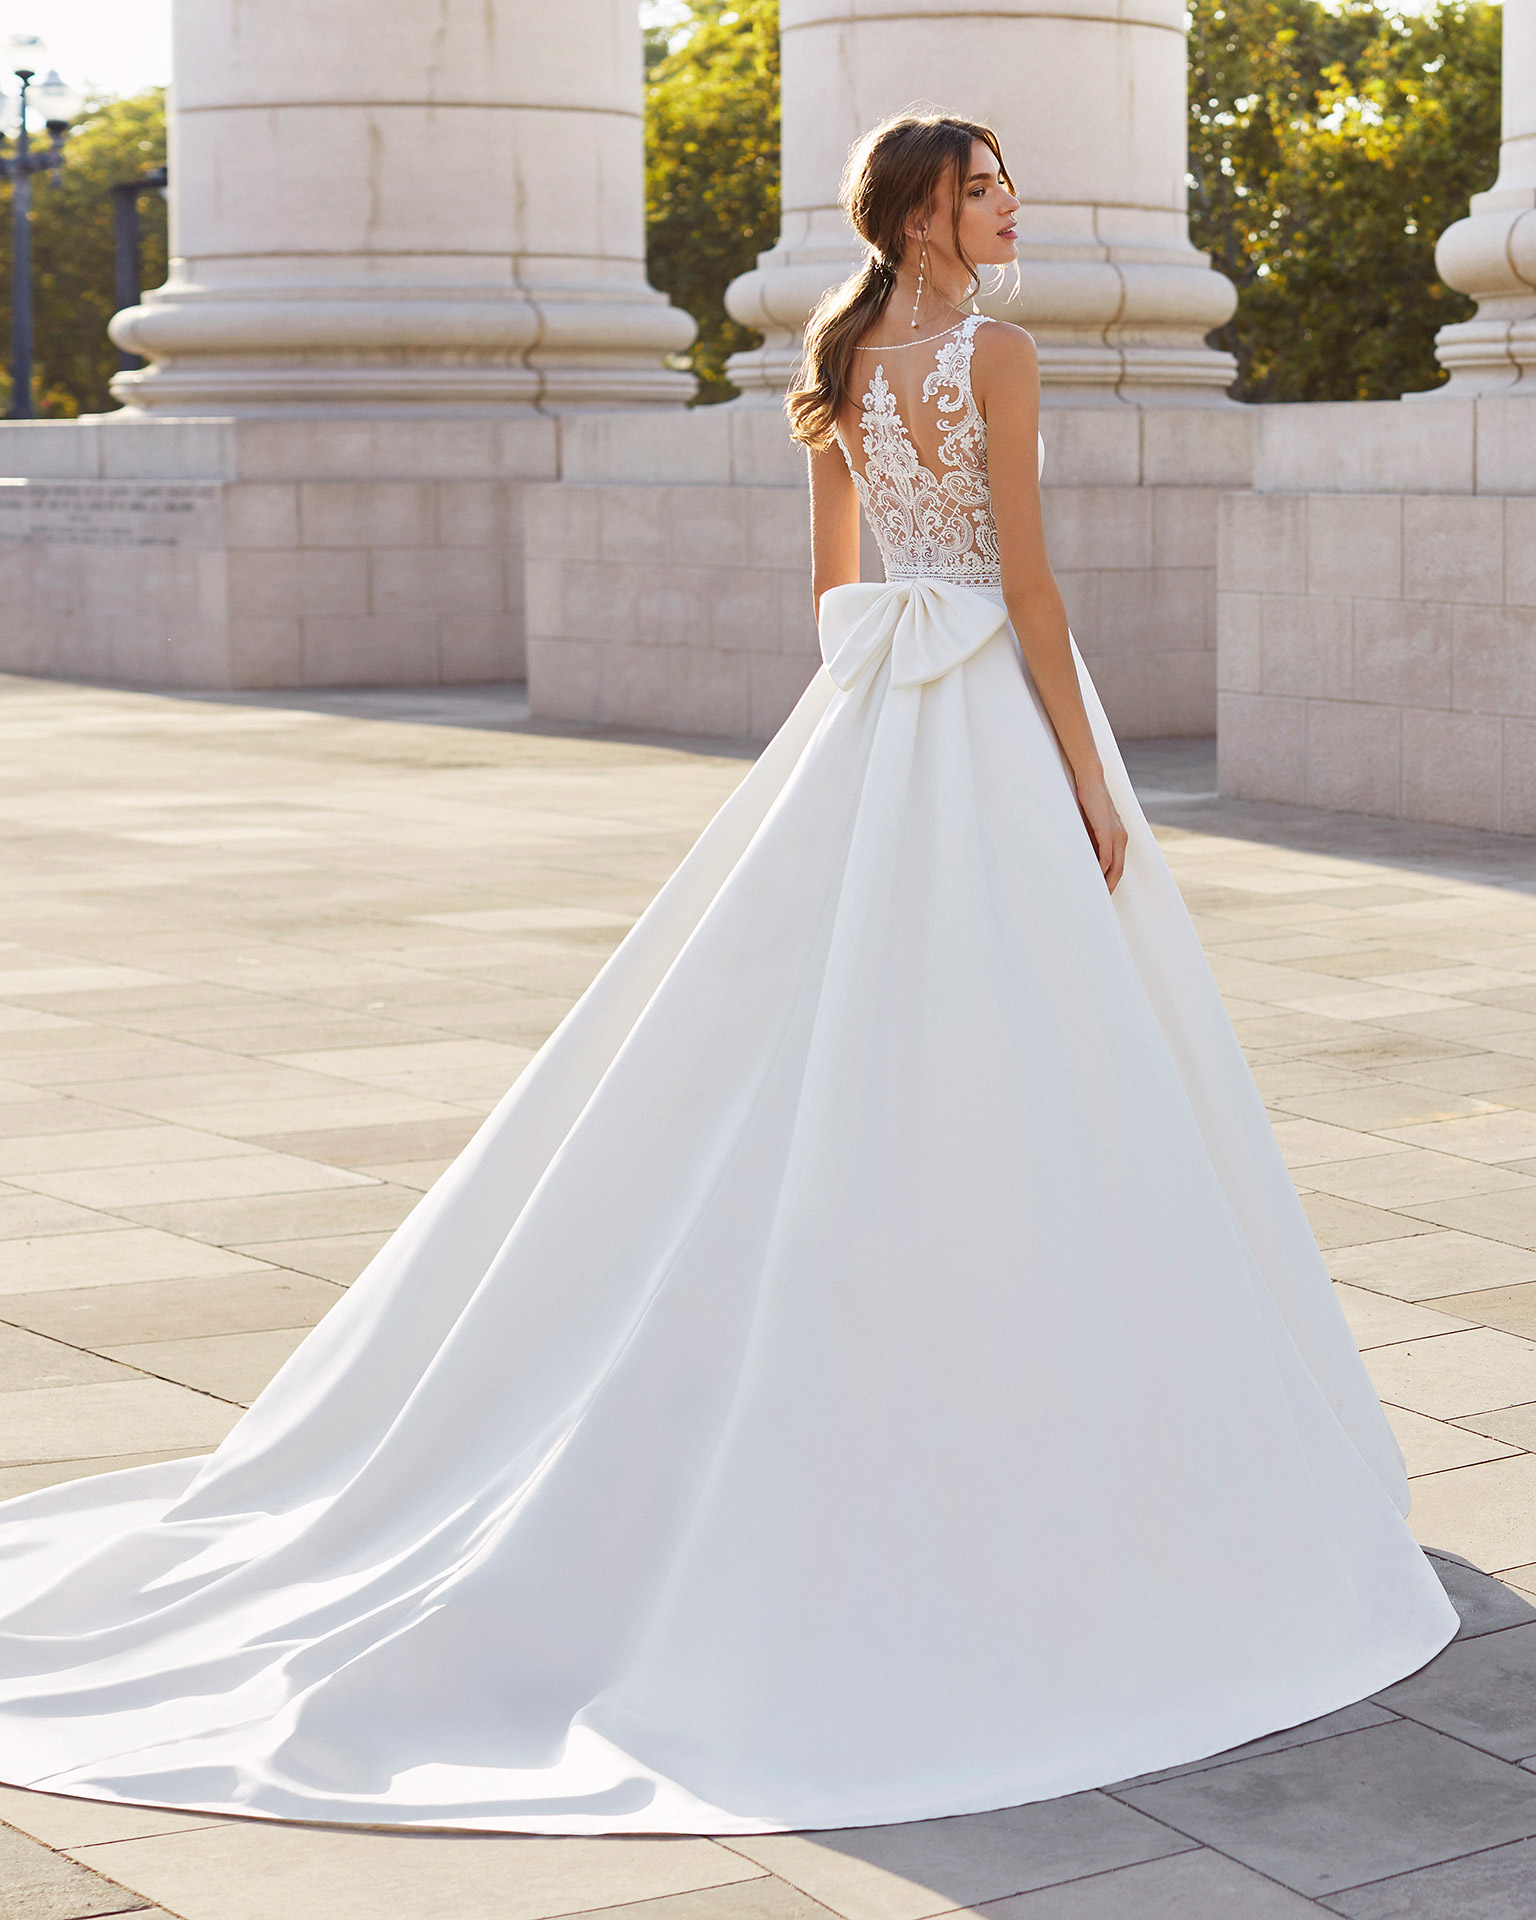 Classic-style wedding dress in satin and beaded lace. Bateau neckline and sheer back in beaded lace with bow. 2021  Collection.